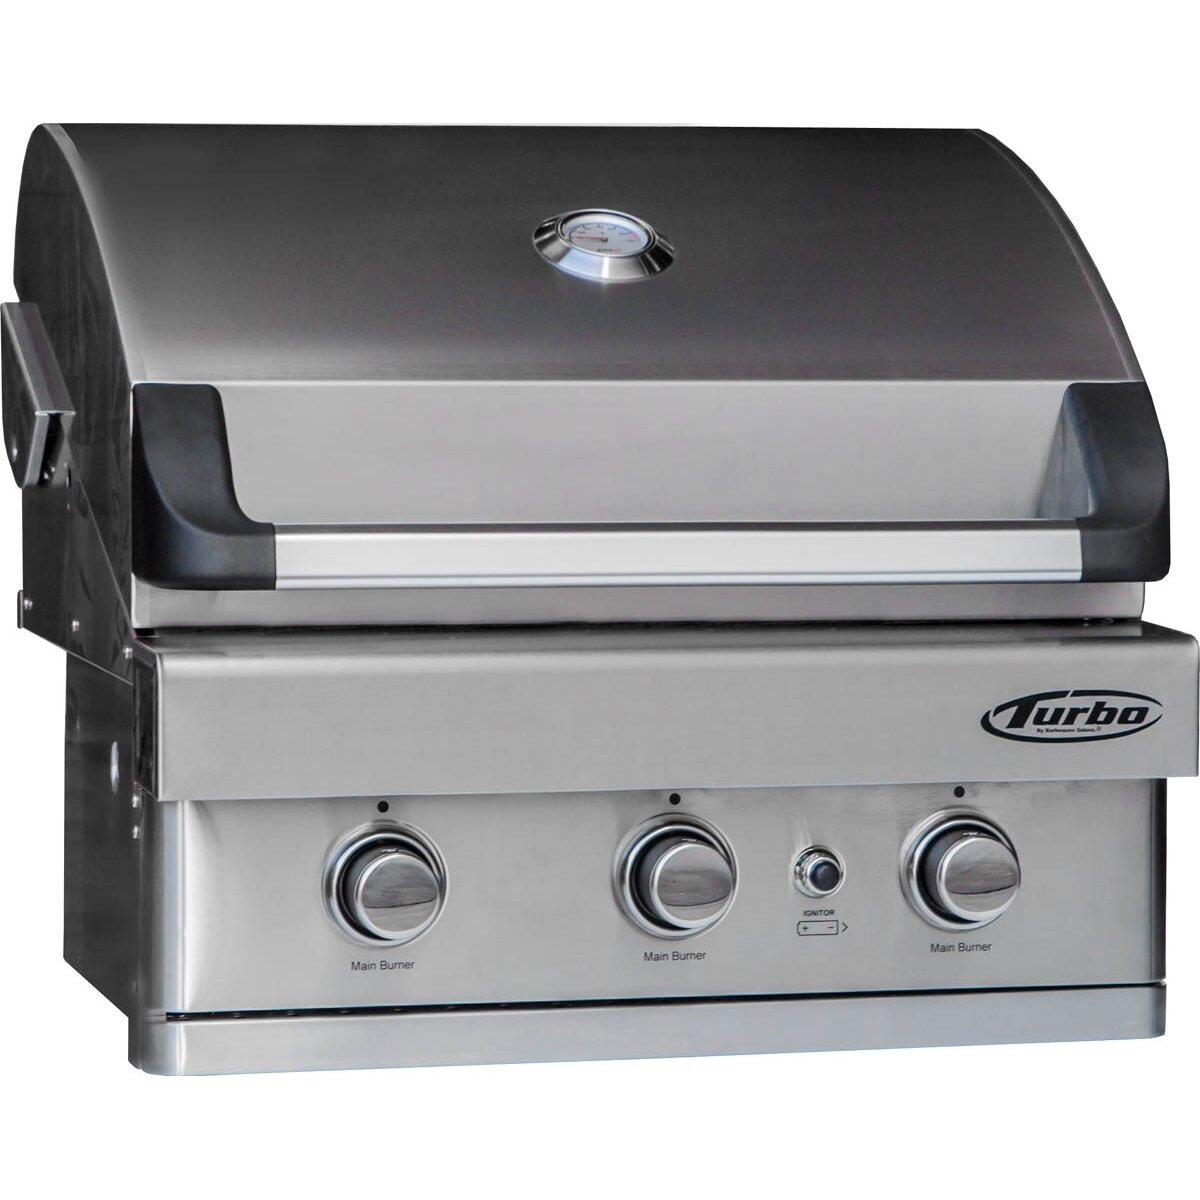 Barbeques Galore Turbo 3 Burner Built In Gas Grill